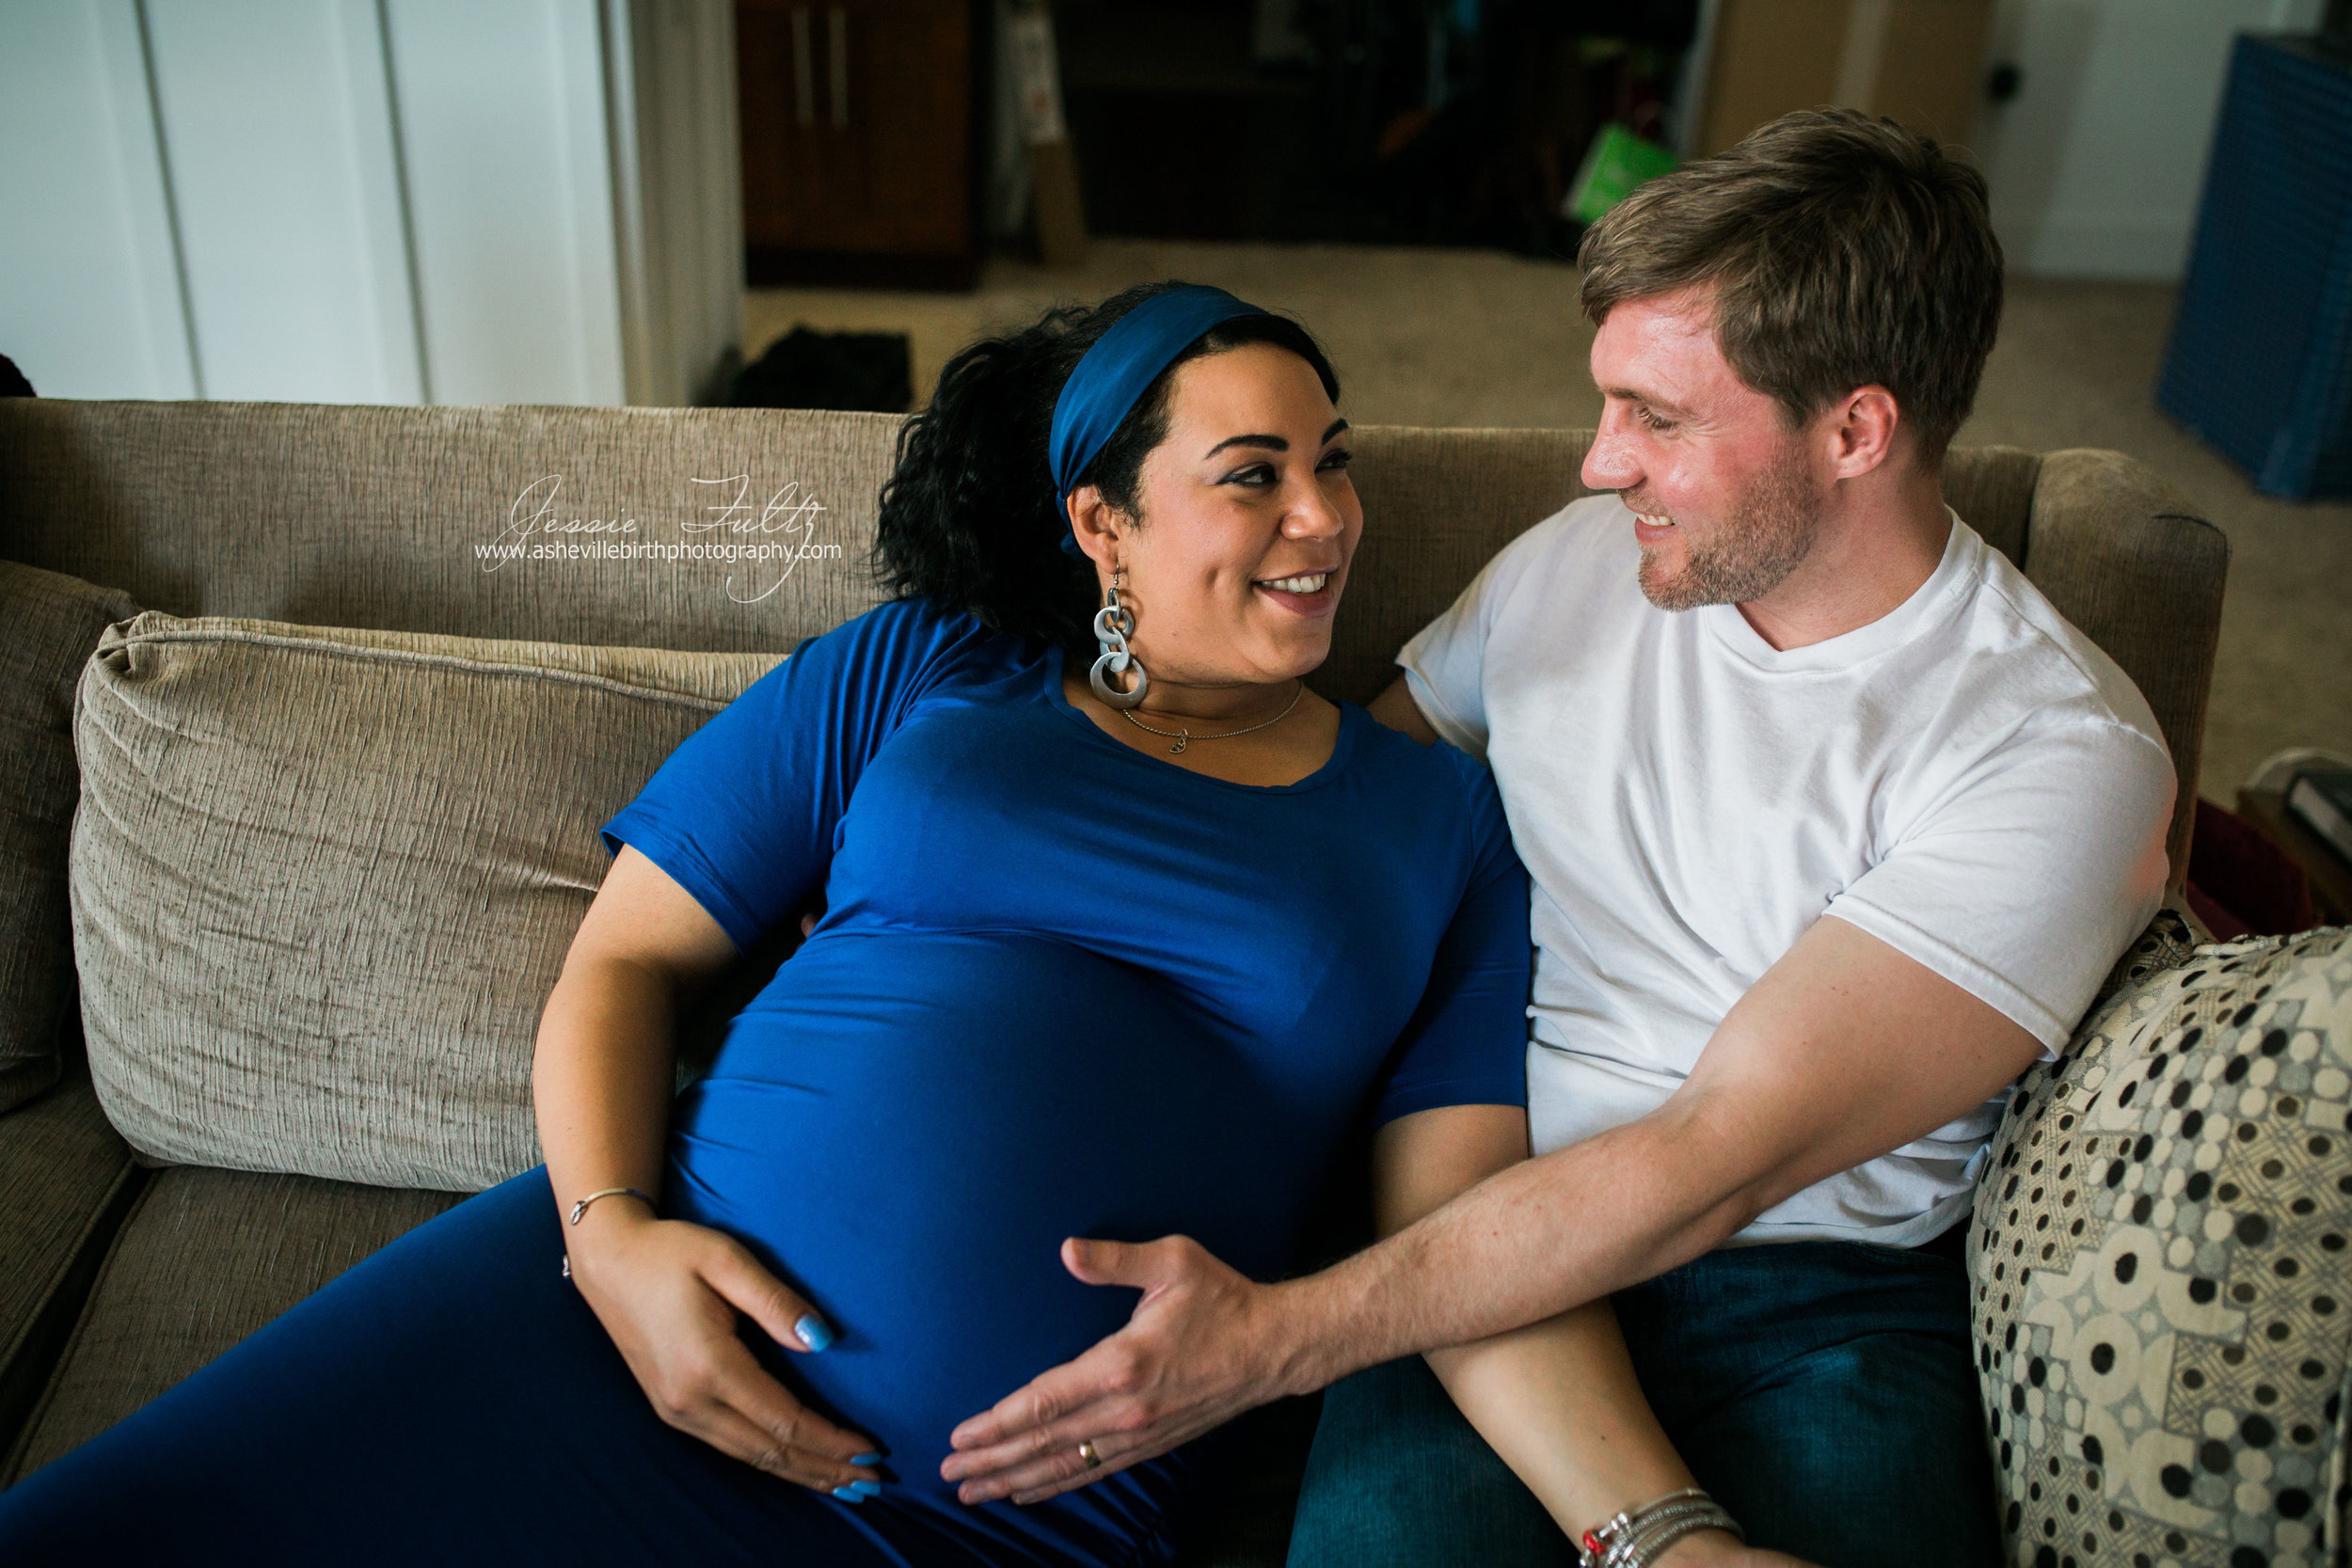 pregnant woman in a blue dress sitting on the couch smiling at her husband while he touches her belly